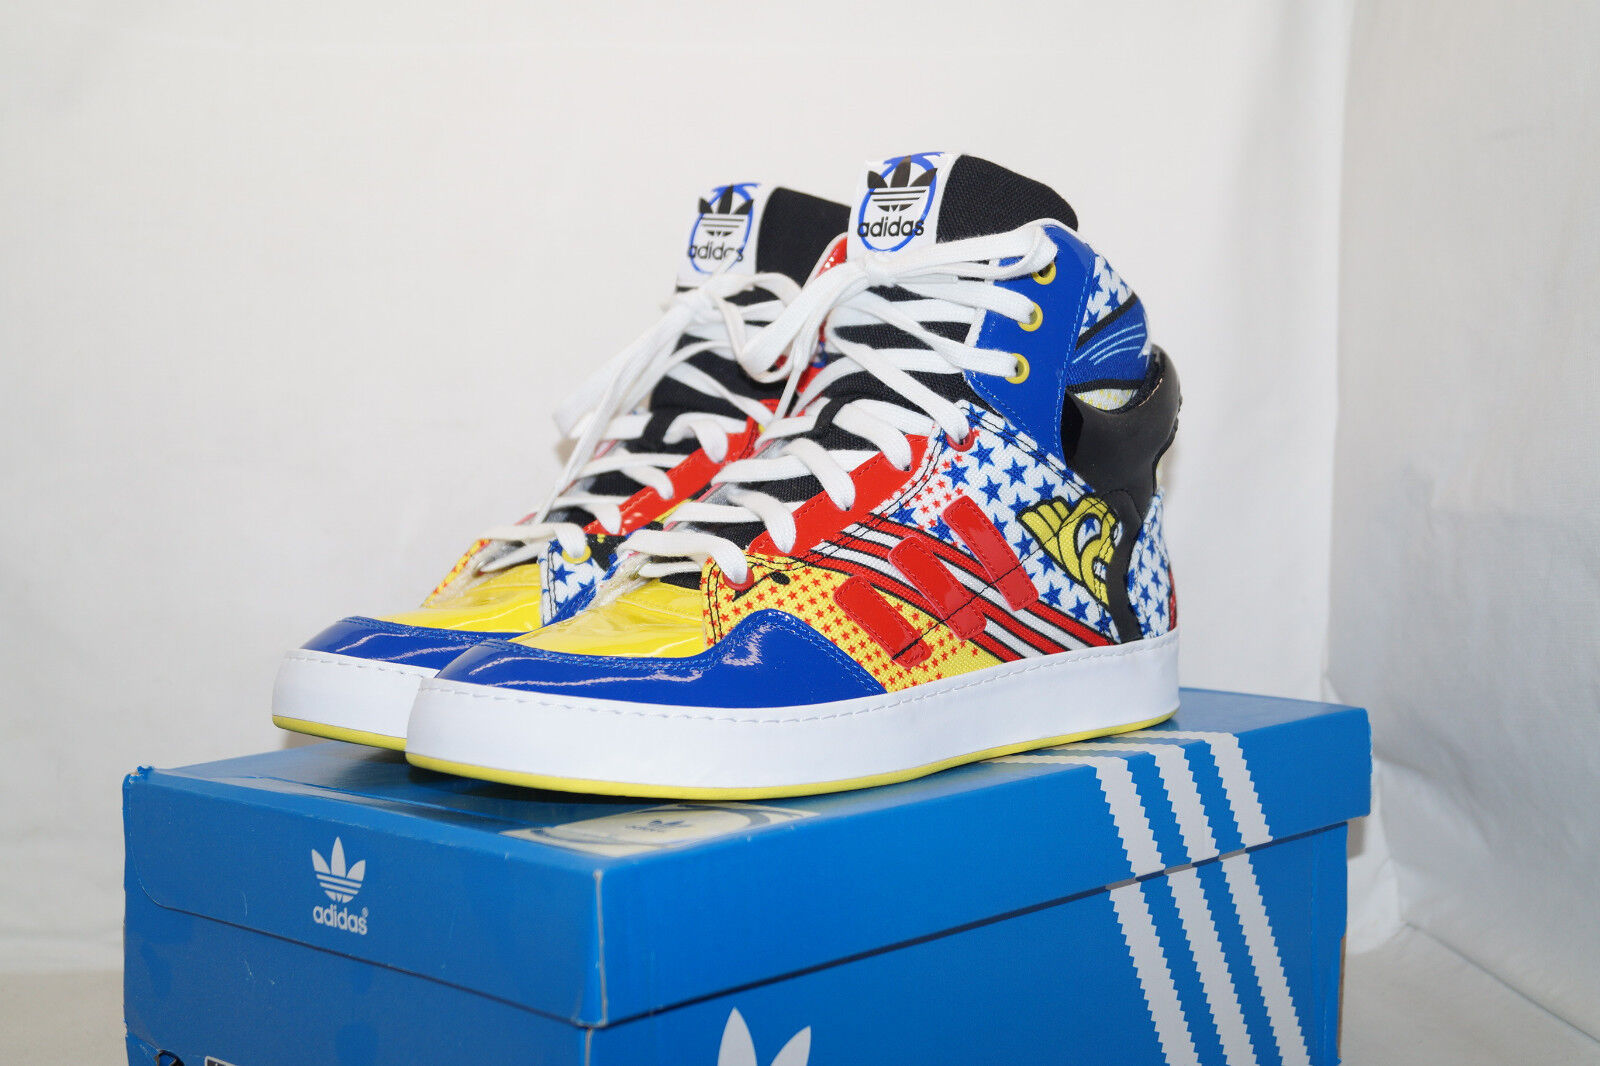 Adidas originals BANKSHOT 2.0 EU W by Rita Ora EU 2.0 38.6 UK 5.5 multicolor B26715 53c9e8